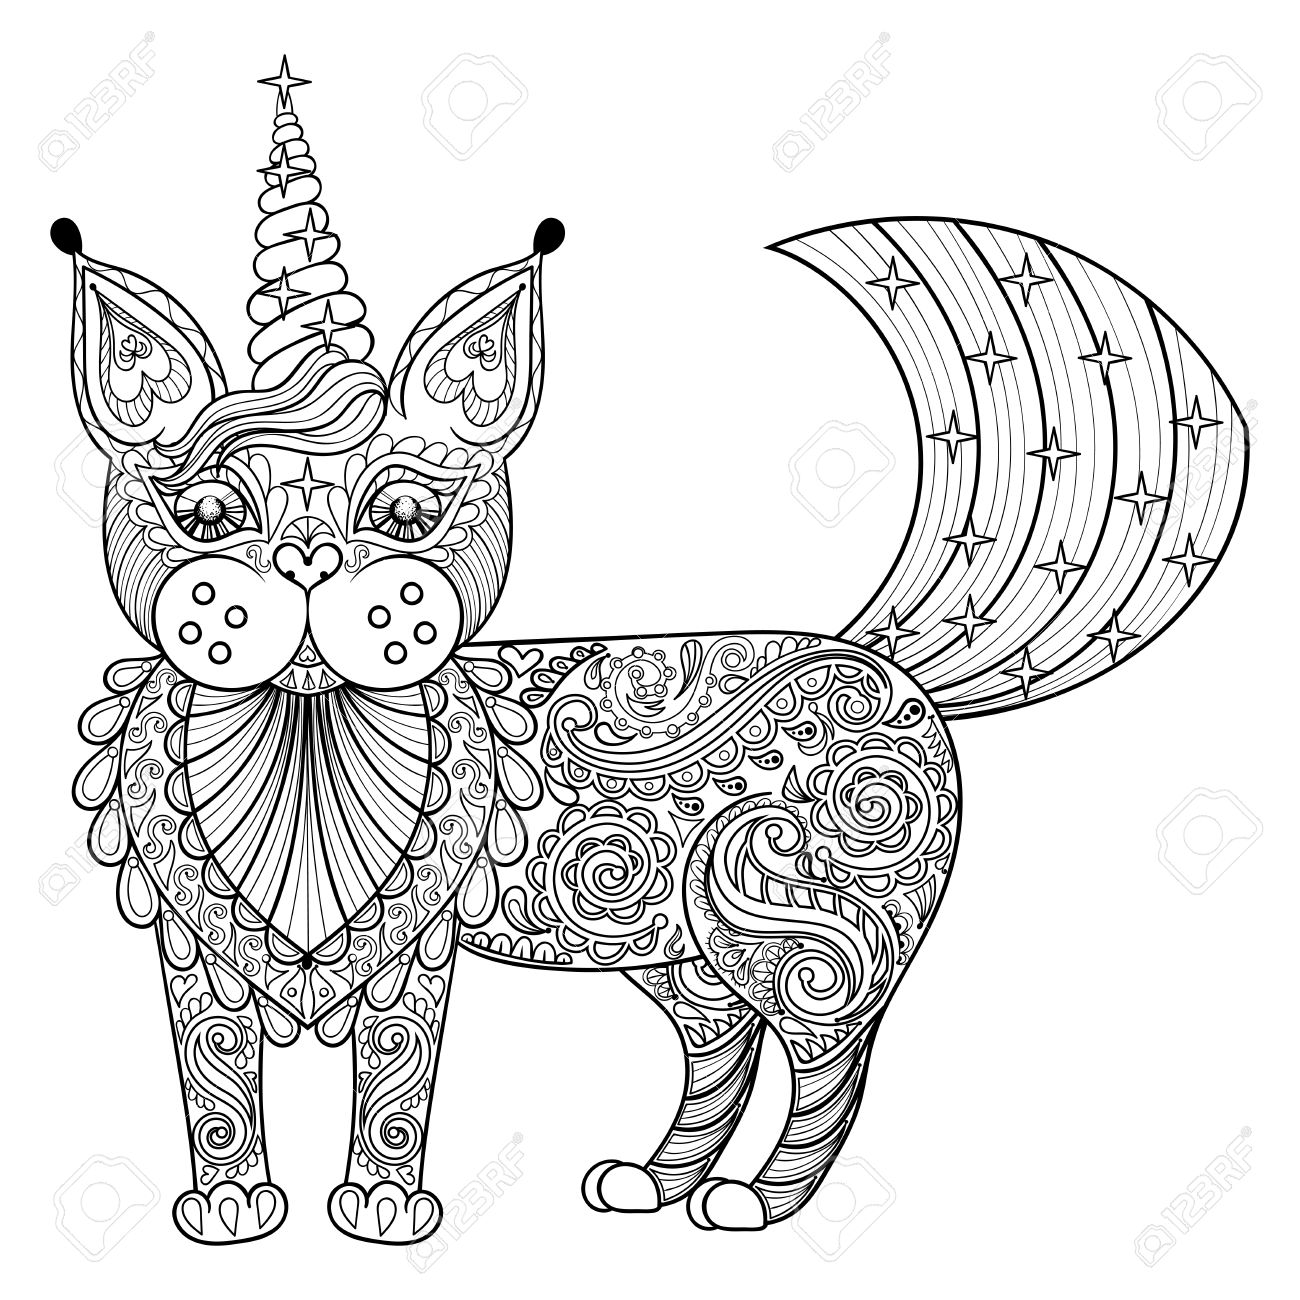 Vector Zentangle Magic Cat Unicorn Black Print For Adult Anti Stress Coloring Page Hand